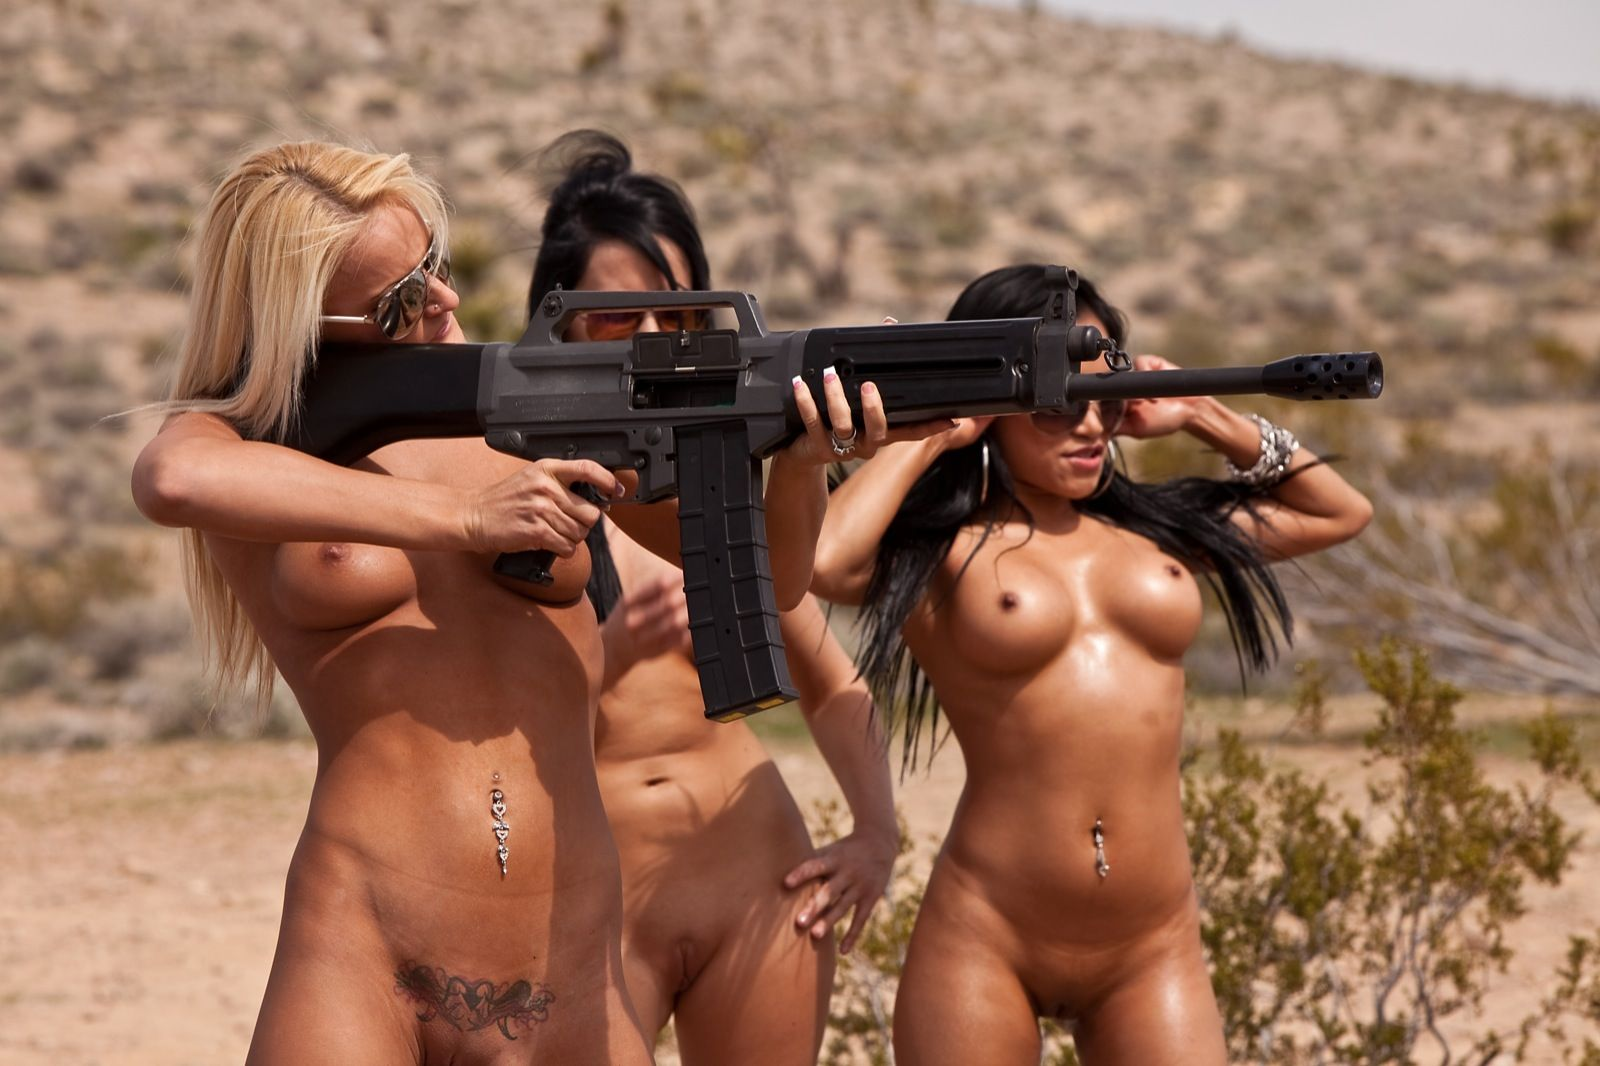 Offense reccomend posing with guns nude girls